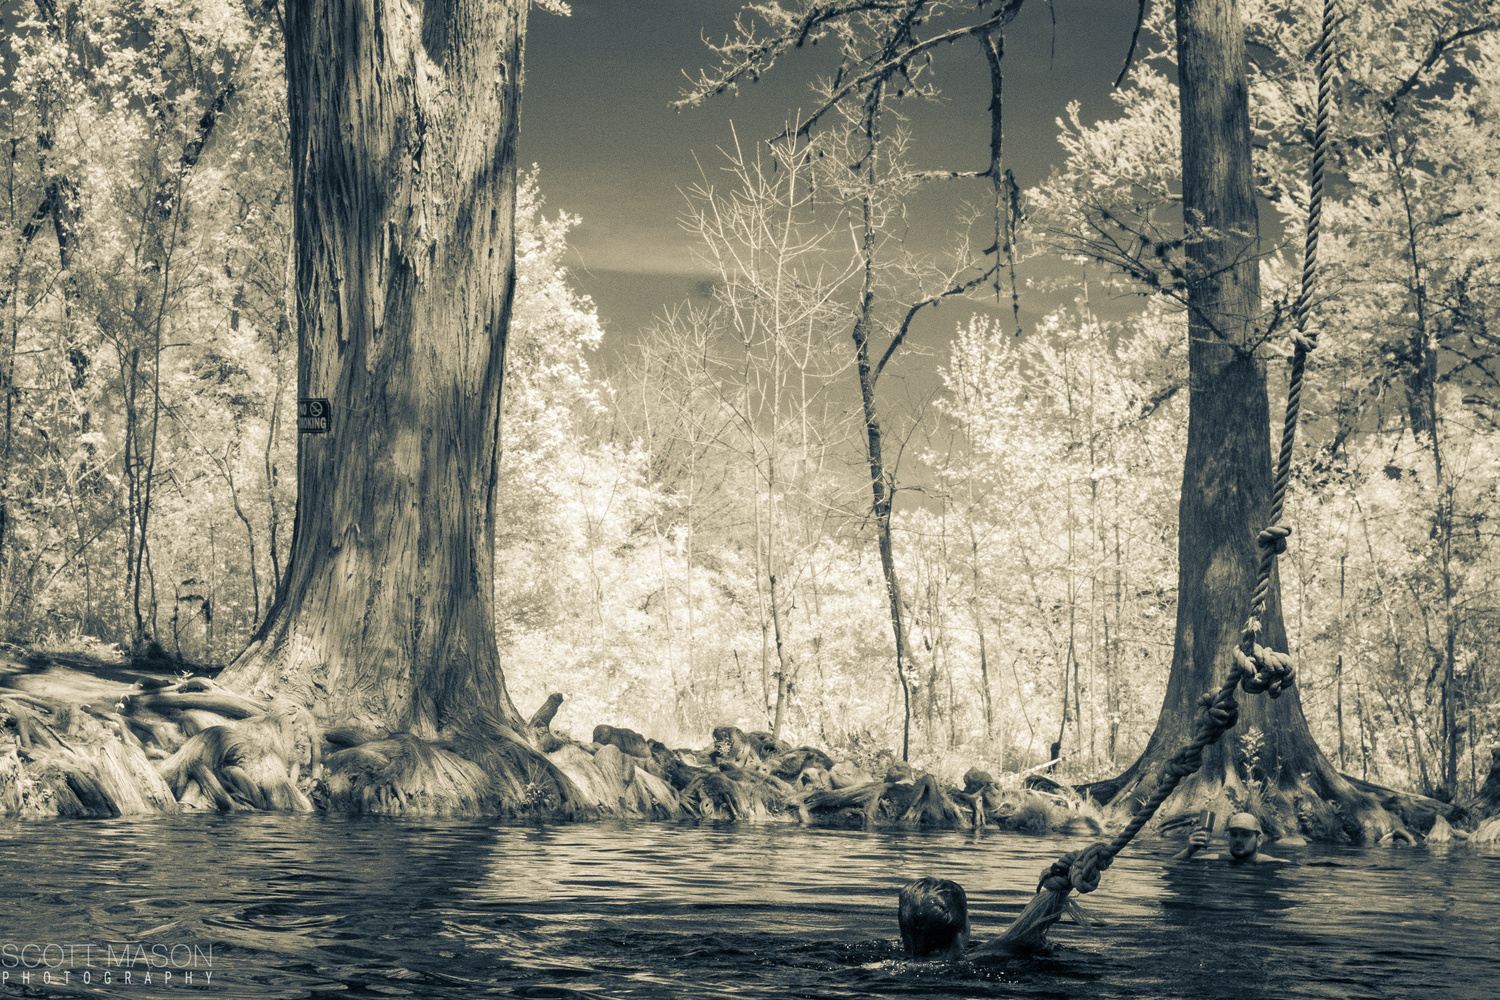 an infrared photo of a kid hanging on a rope swing in the water